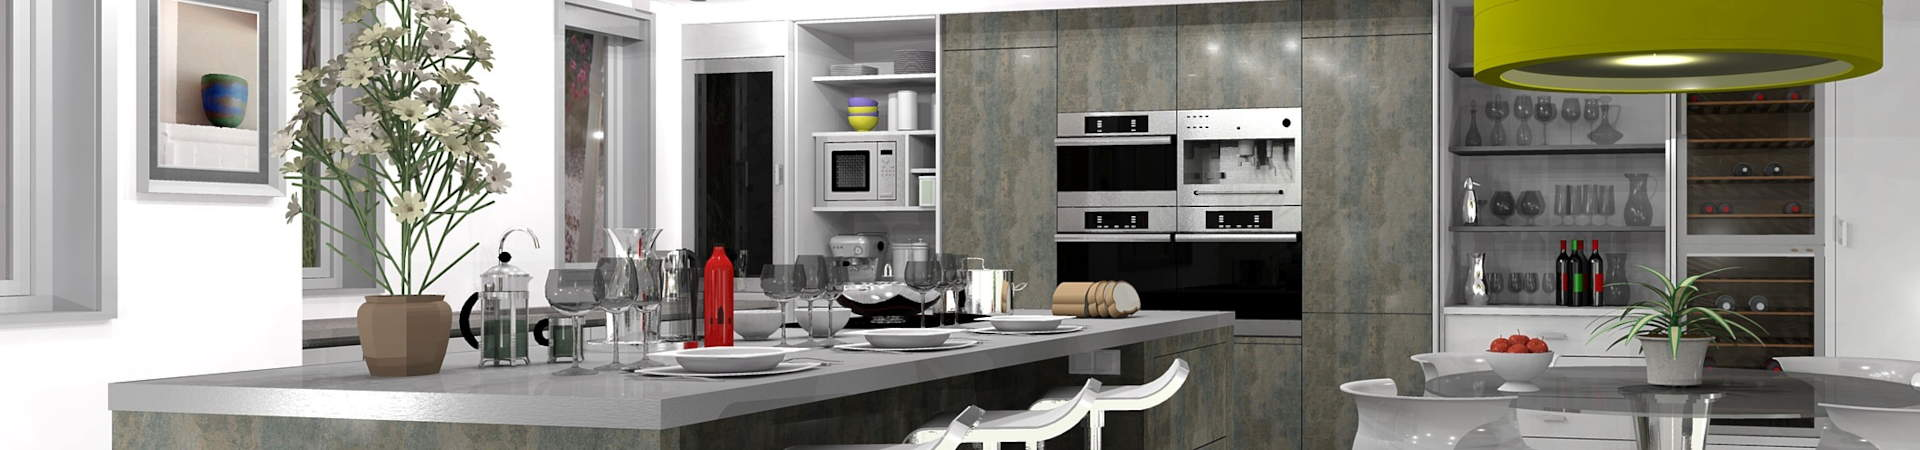 We have the right kitchen design software solution for everyone: with autokitchen, cabinet manufacturers get detailed lists about every cabinet, including the reference number, pulls, doors, etc.